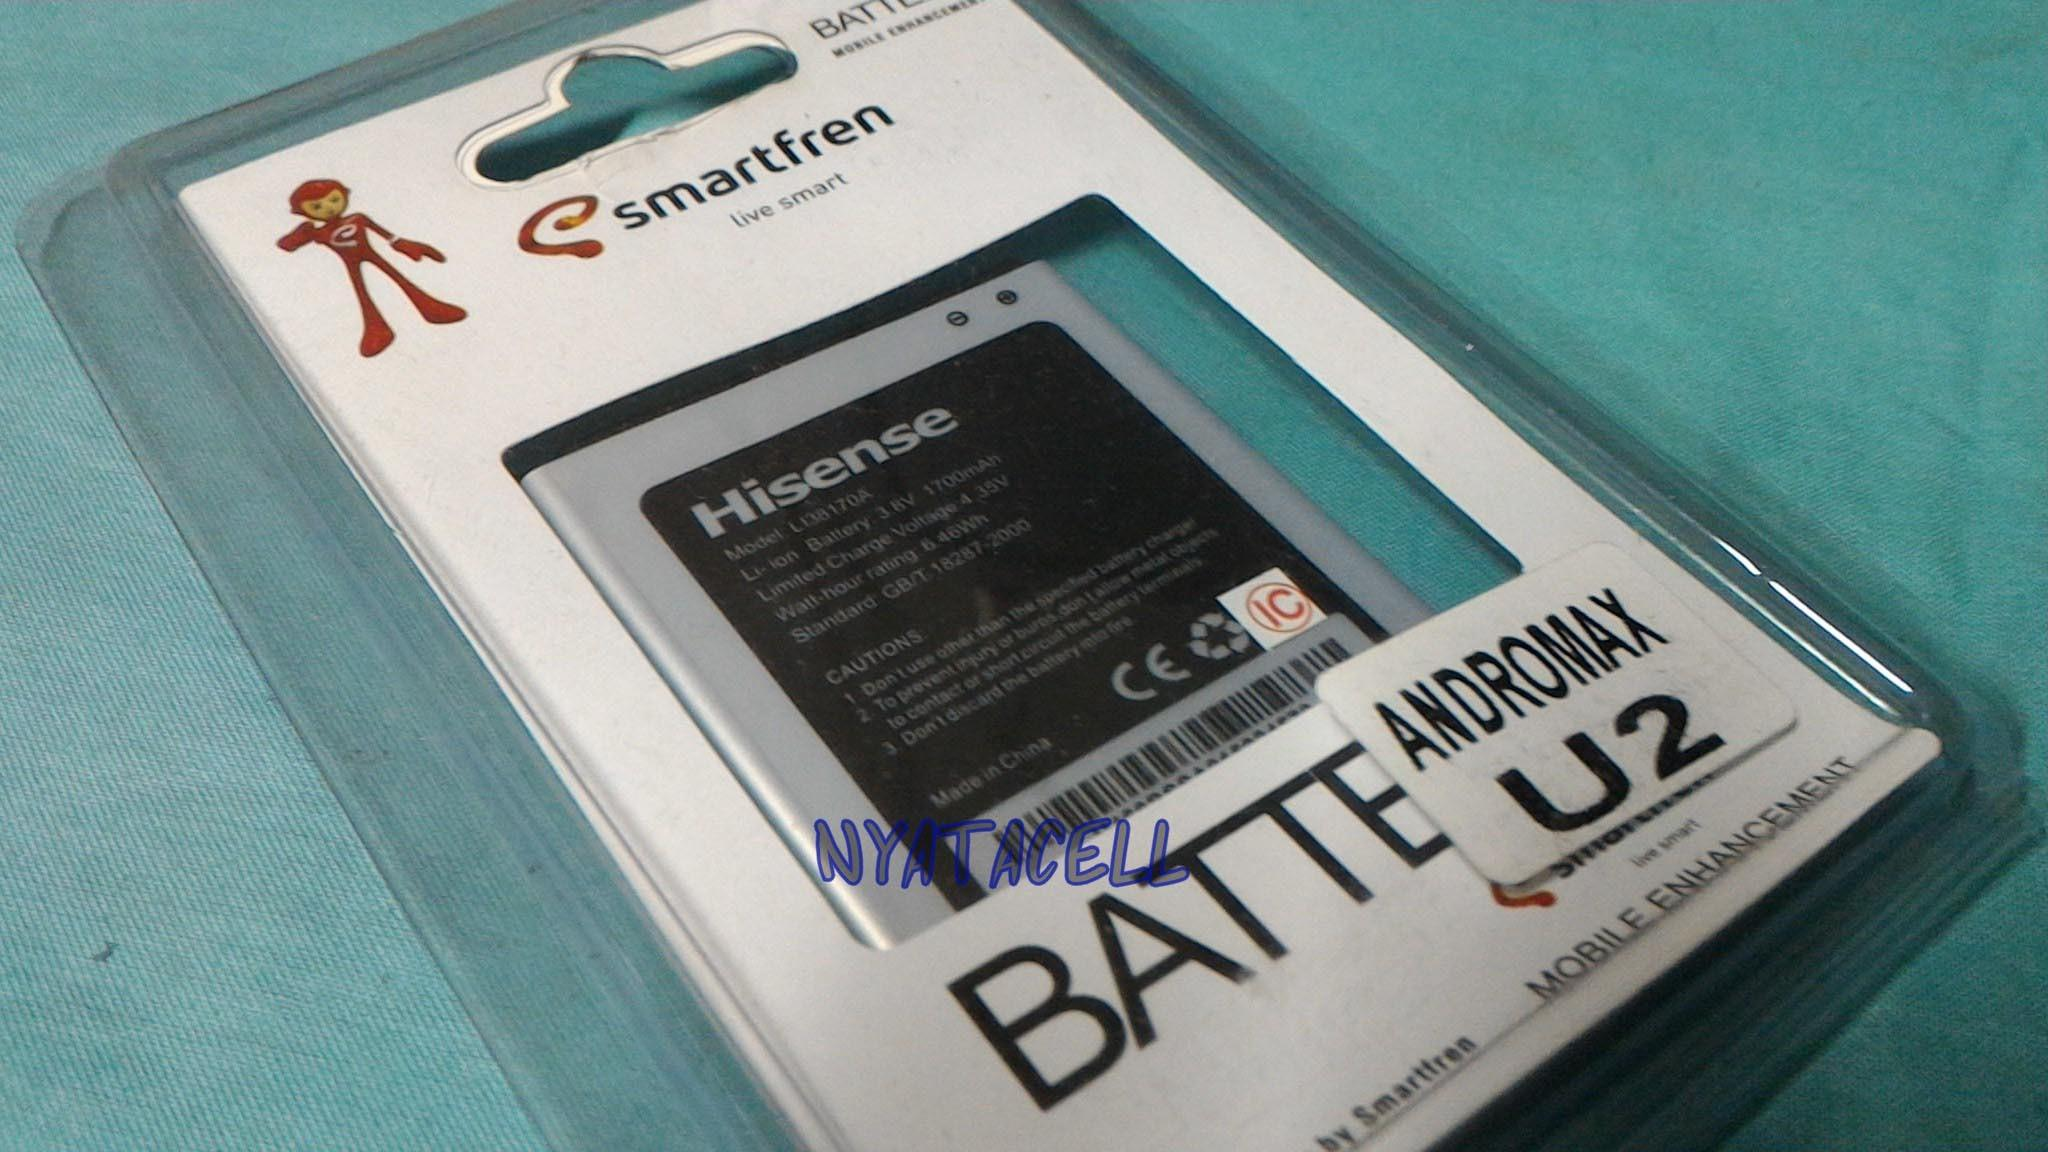 Smartfren Battery Li38170a Original For Andromax U2 Silver Review Source · BEST OFFER Baterai Smartfren Andromax U2 1700mAh Smartfren Ori 99 Max Batre